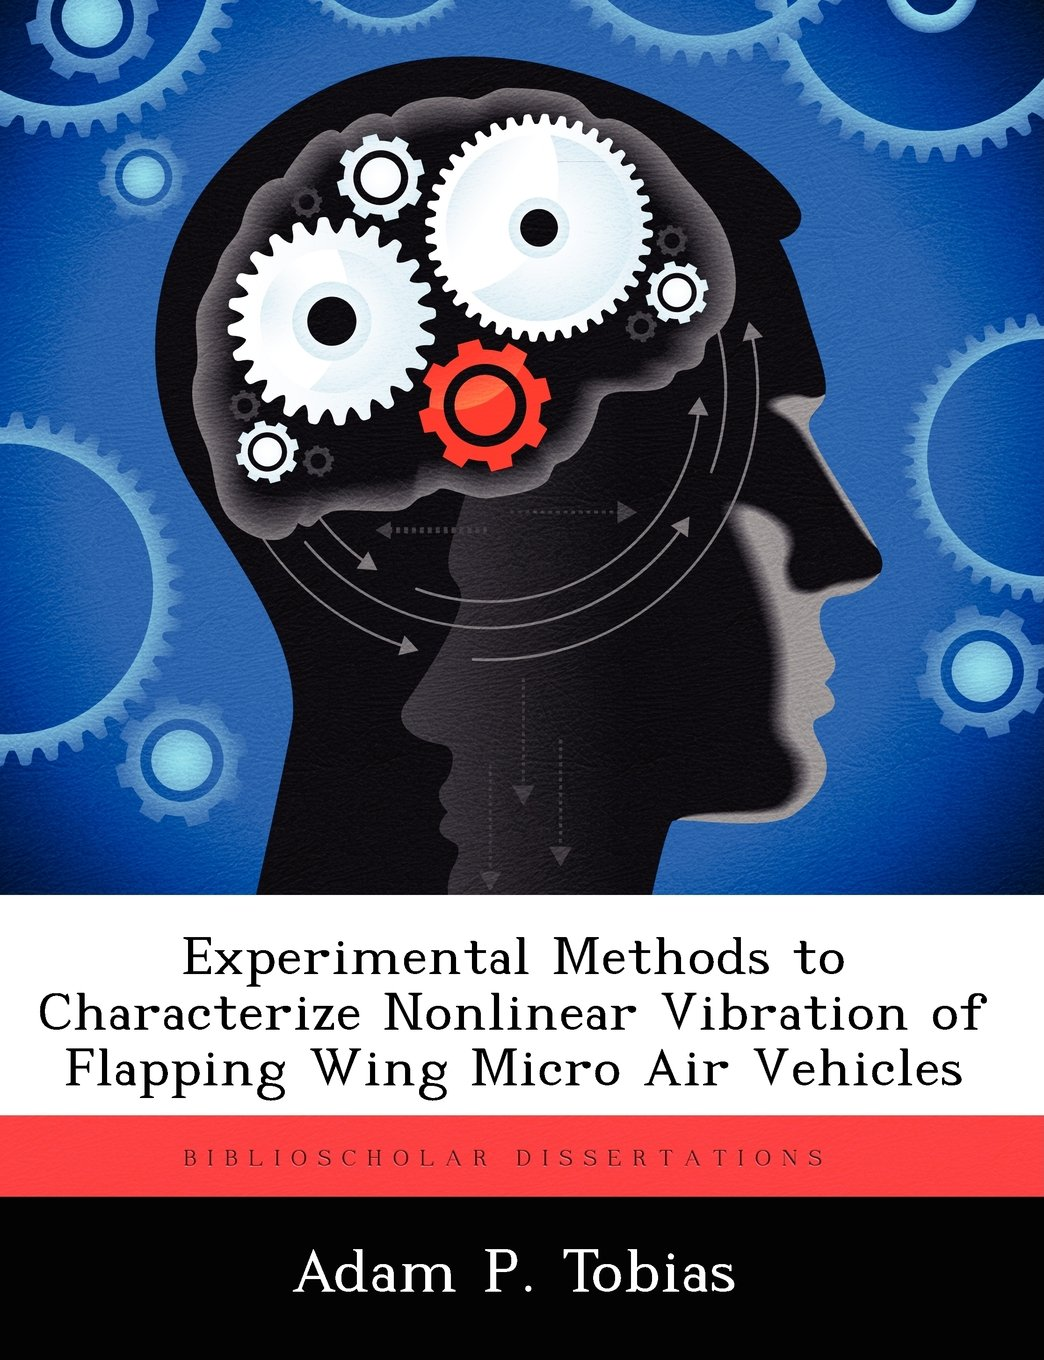 Download Experimental Methods to Characterize Nonlinear Vibration of Flapping Wing Micro Air Vehicles PDF